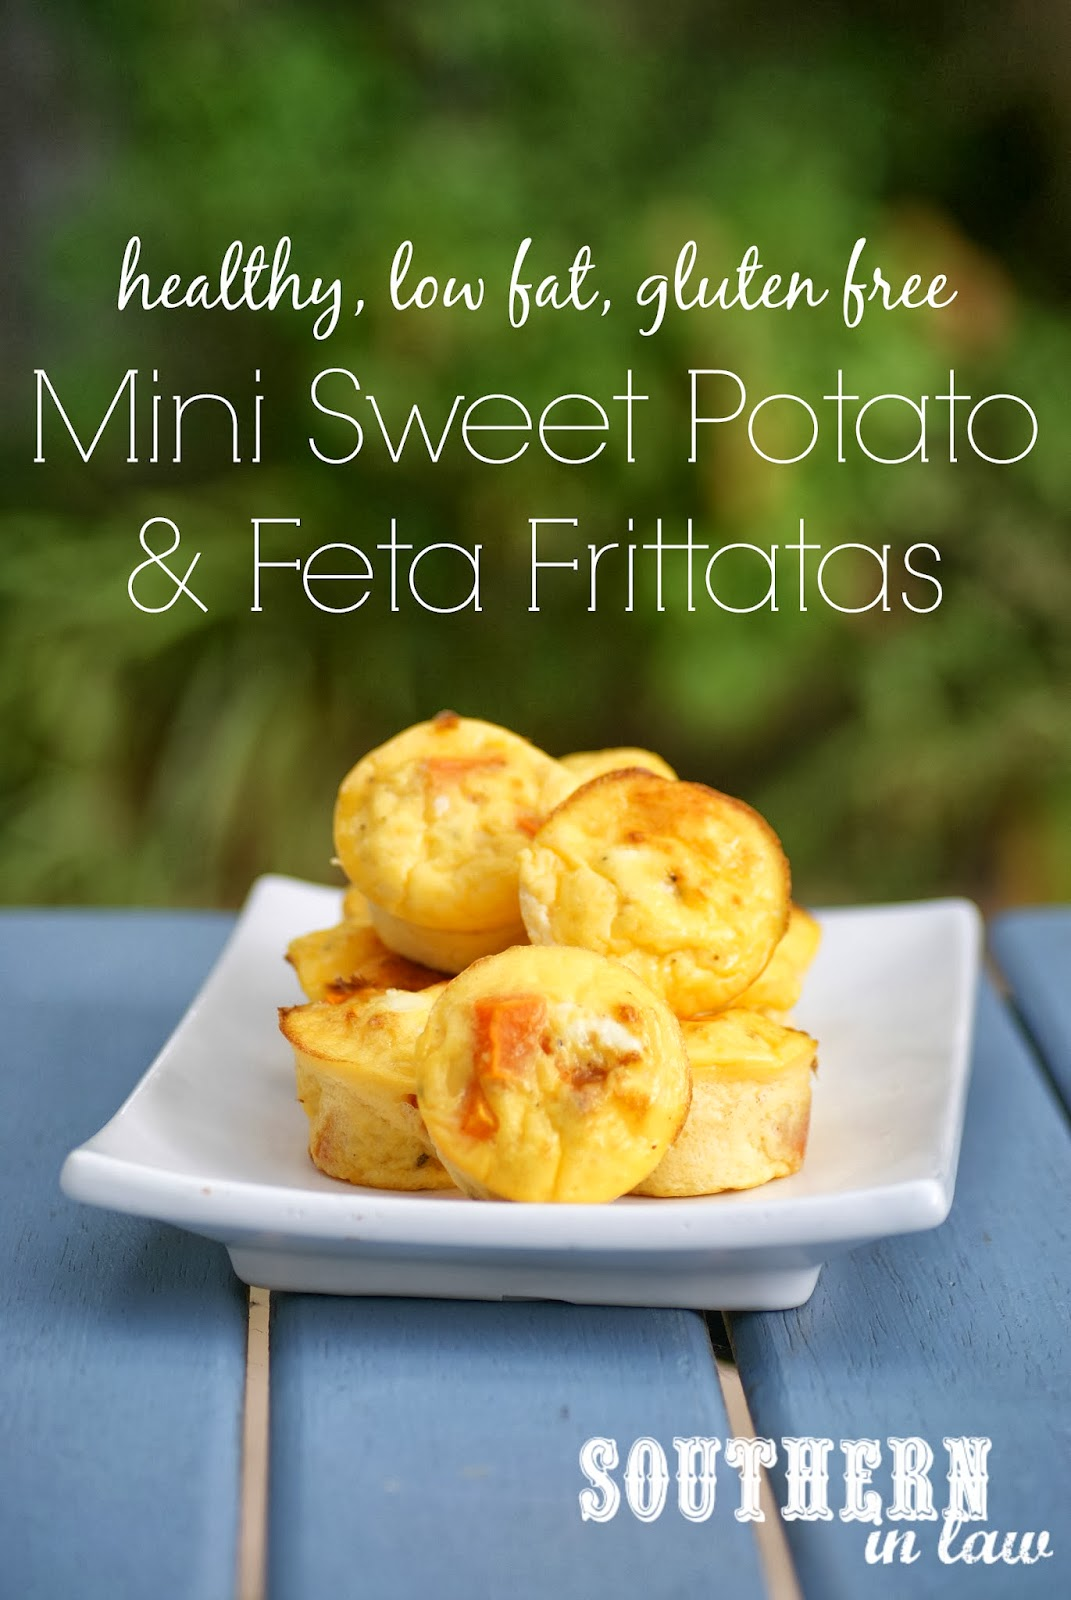 Low Fat Sweet Potato and Feta Frittatas Recipe - healthy, gluten free, low carb, paleo, clean eating friendly